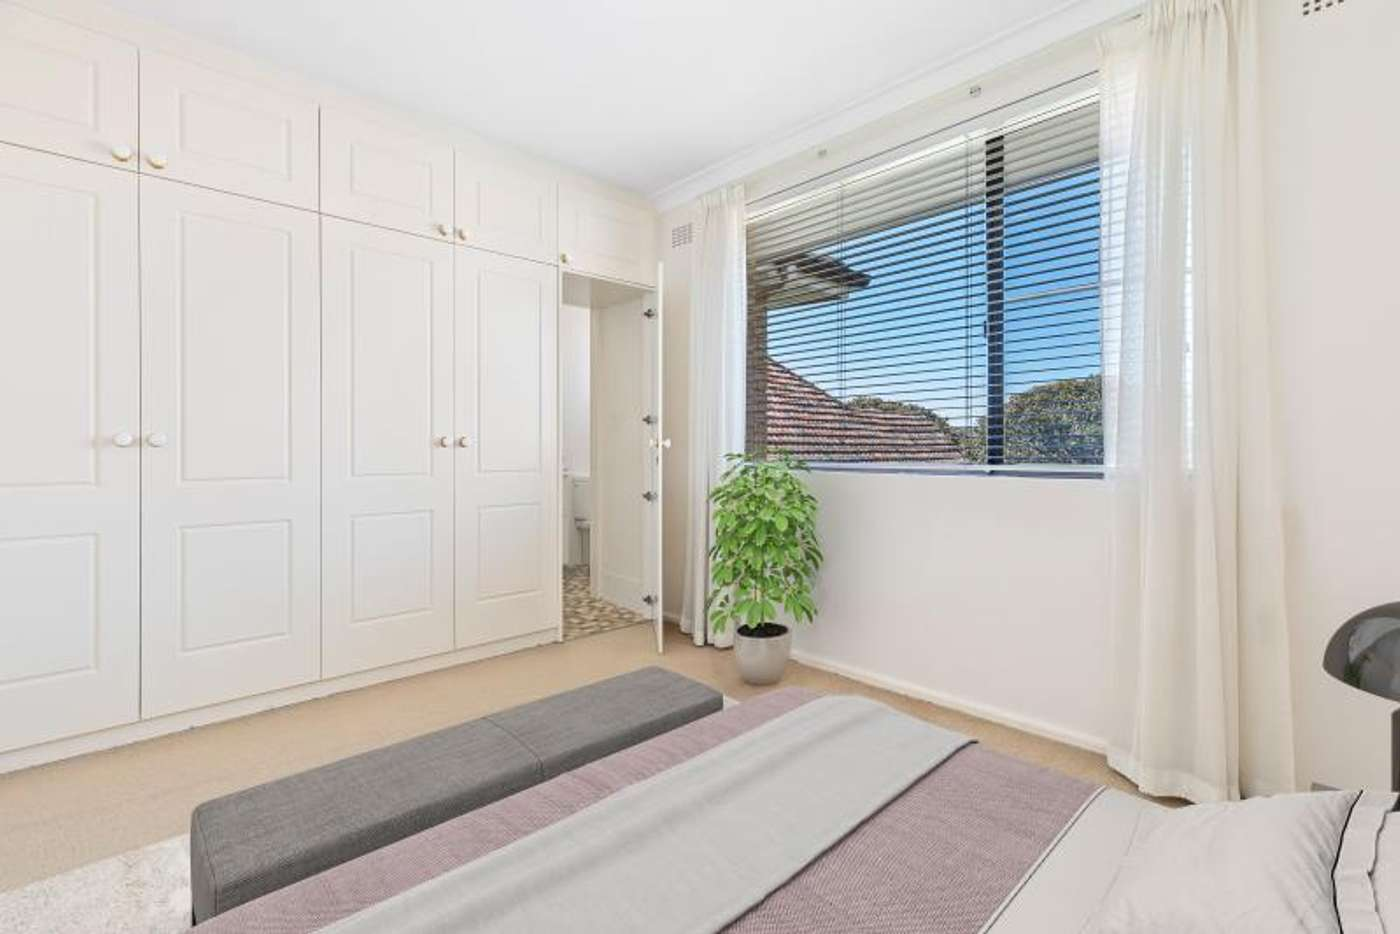 Fifth view of Homely apartment listing, 4 Beronga Street, North Strathfield NSW 2137